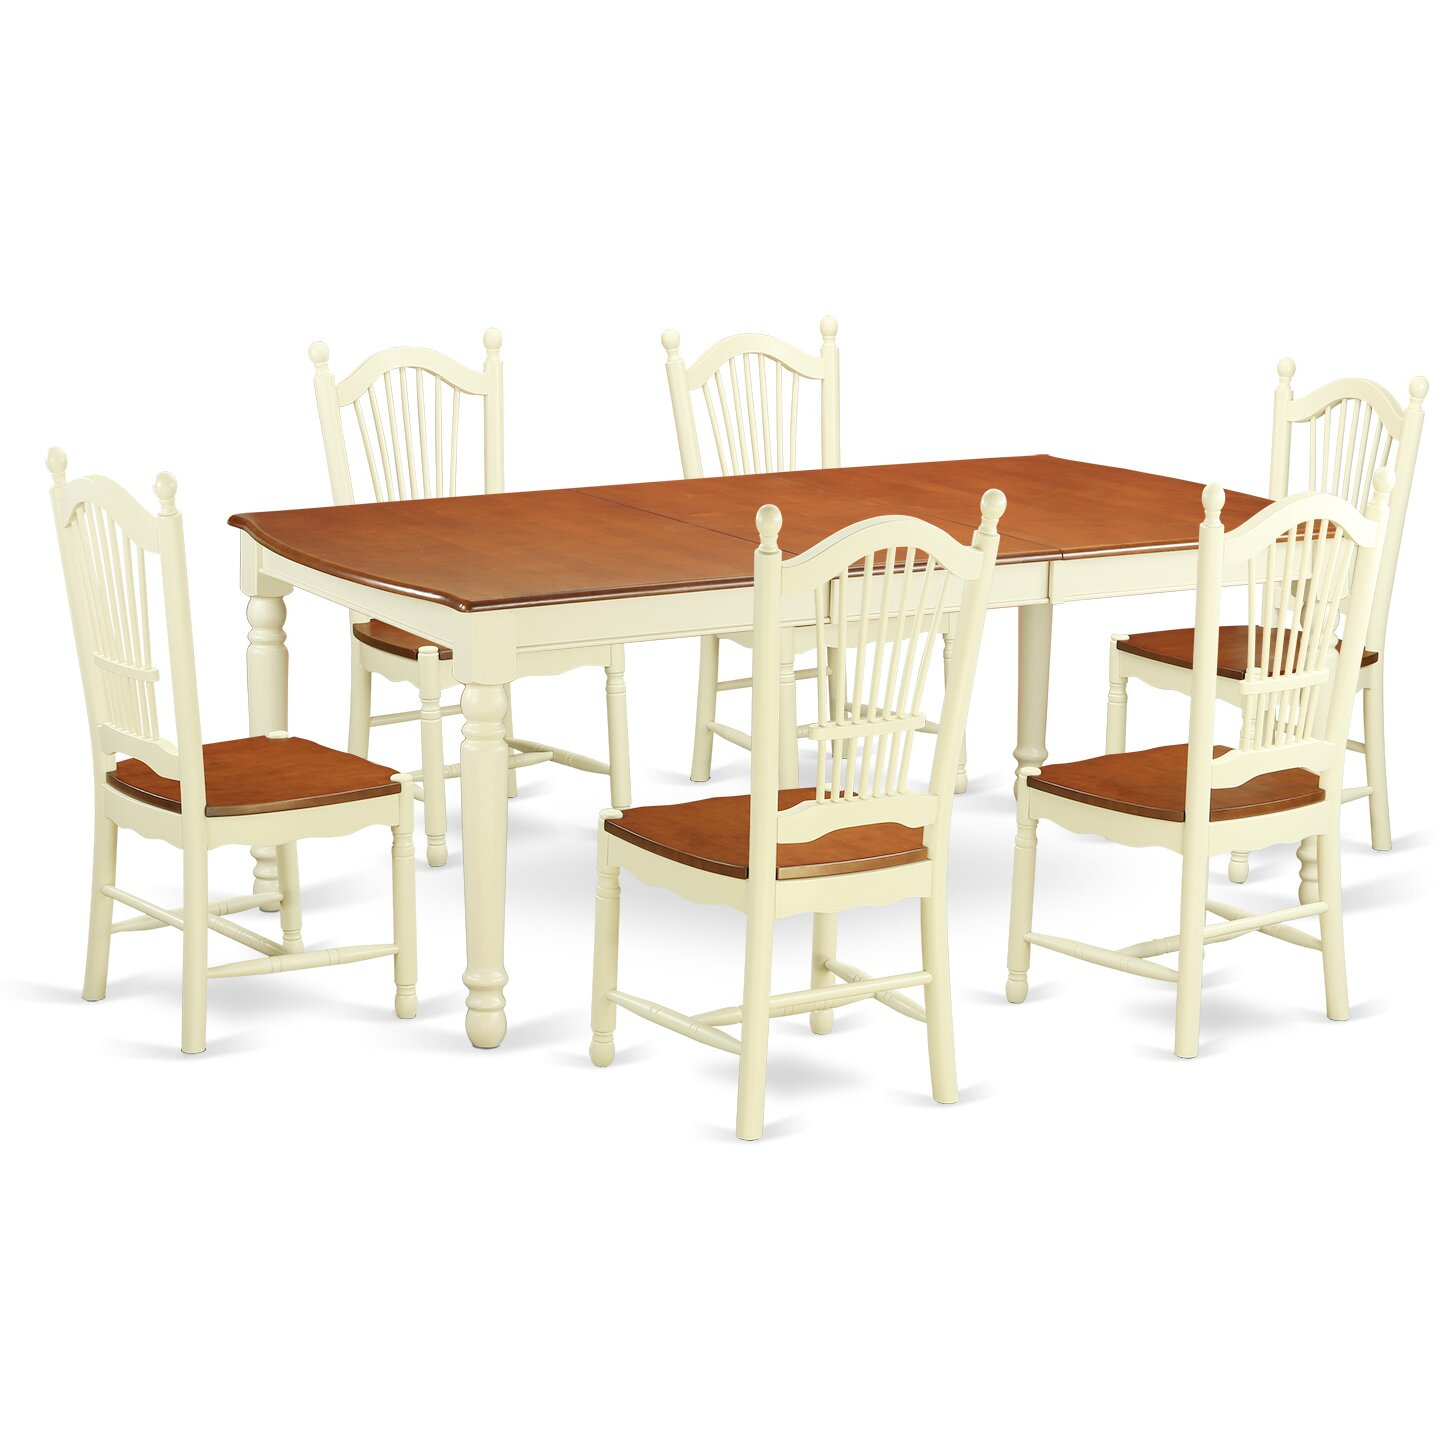 East west dover 7 piece dining set reviews wayfair for Kitchen dining table chairs